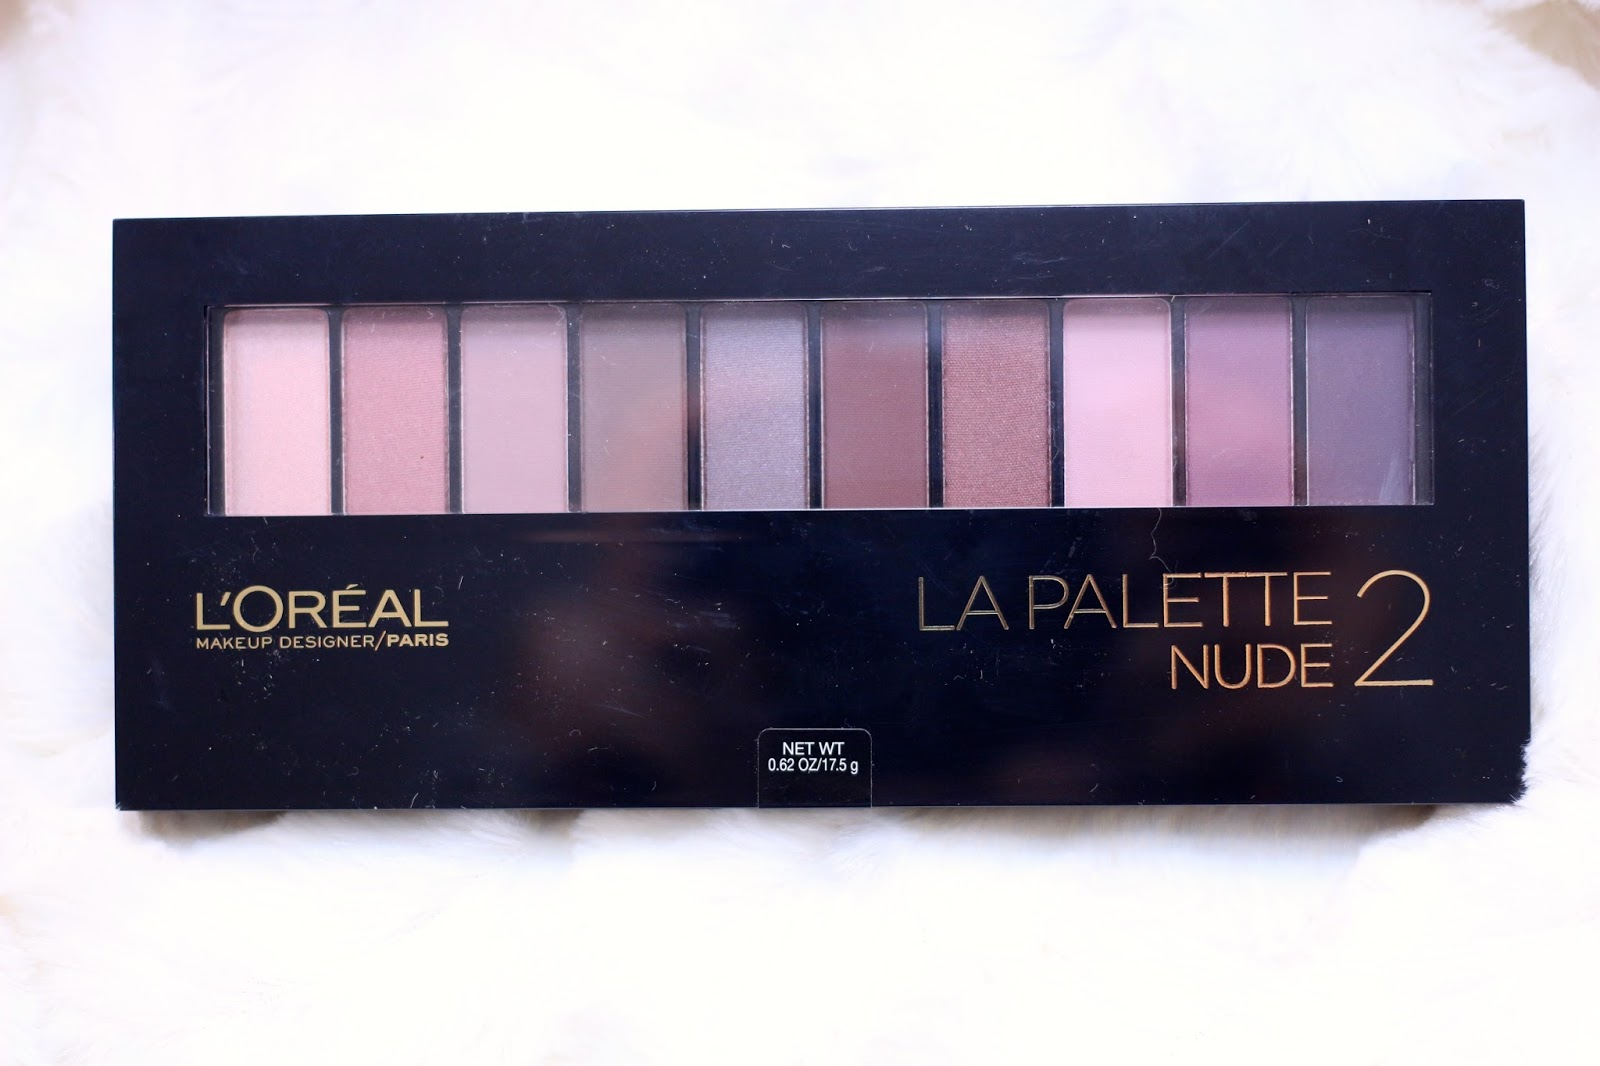 Lainamarie91: NEW Loreal La Palette Nude 1 & 2 Swatches